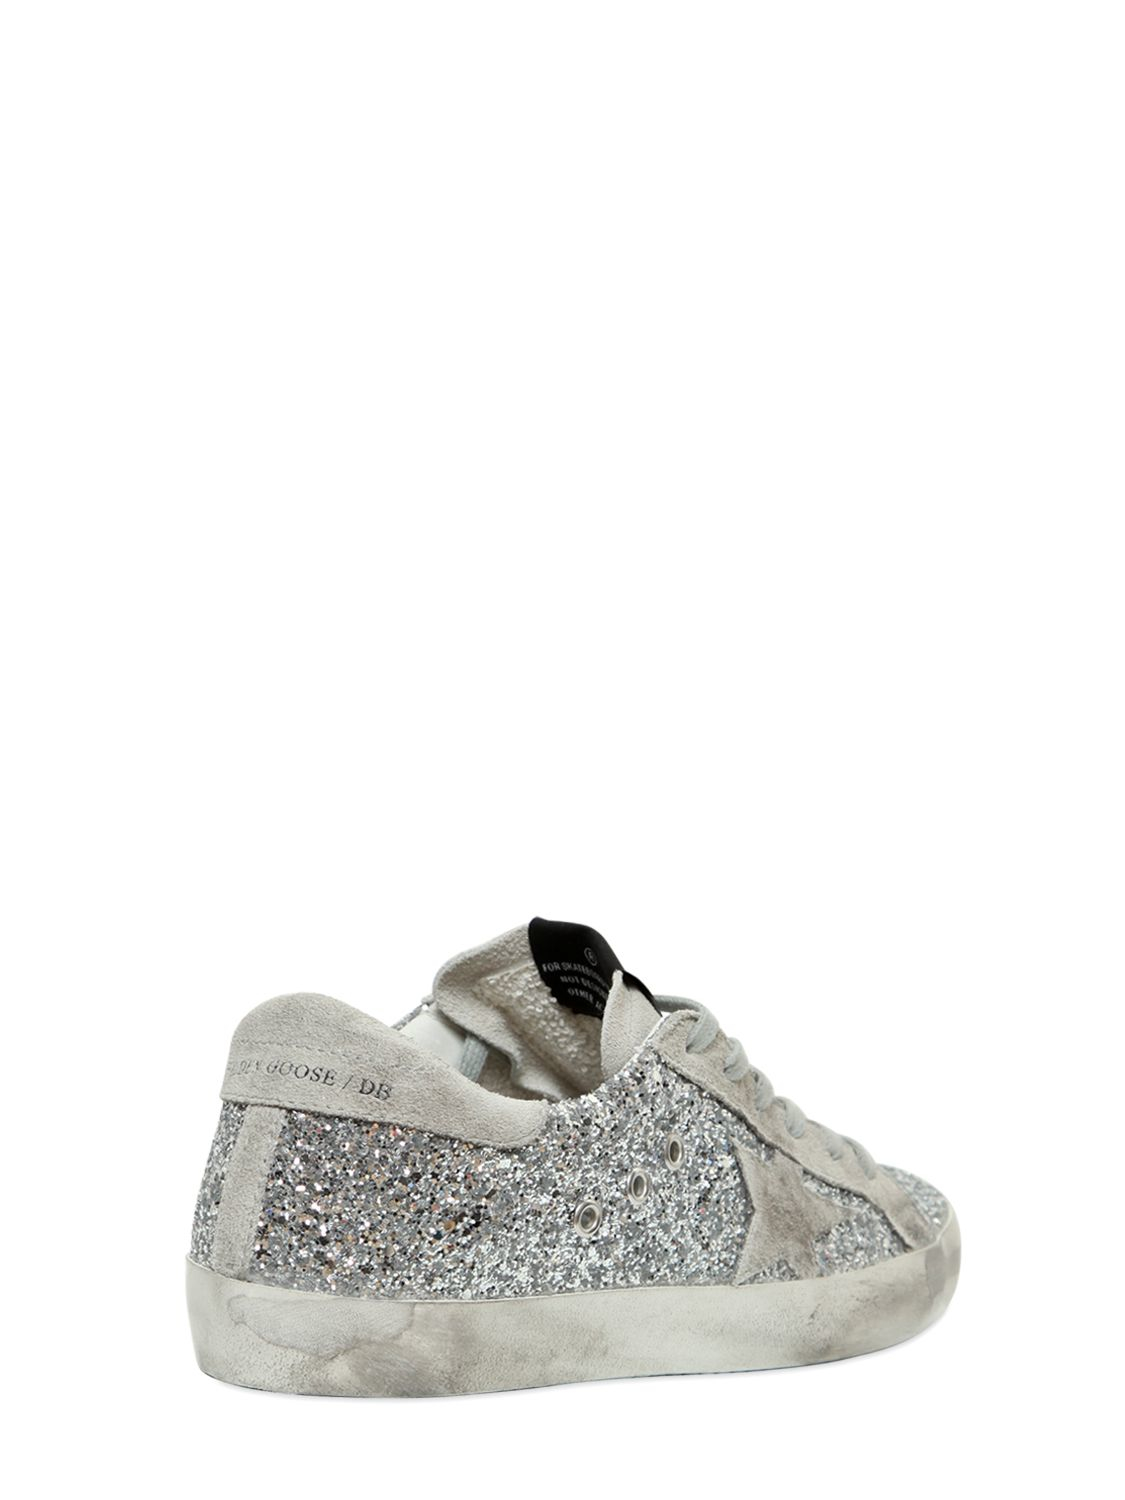 0f82abe2417 Lyst - Golden Goose Deluxe Brand Super Star Glitter   Suede Sneakers ...